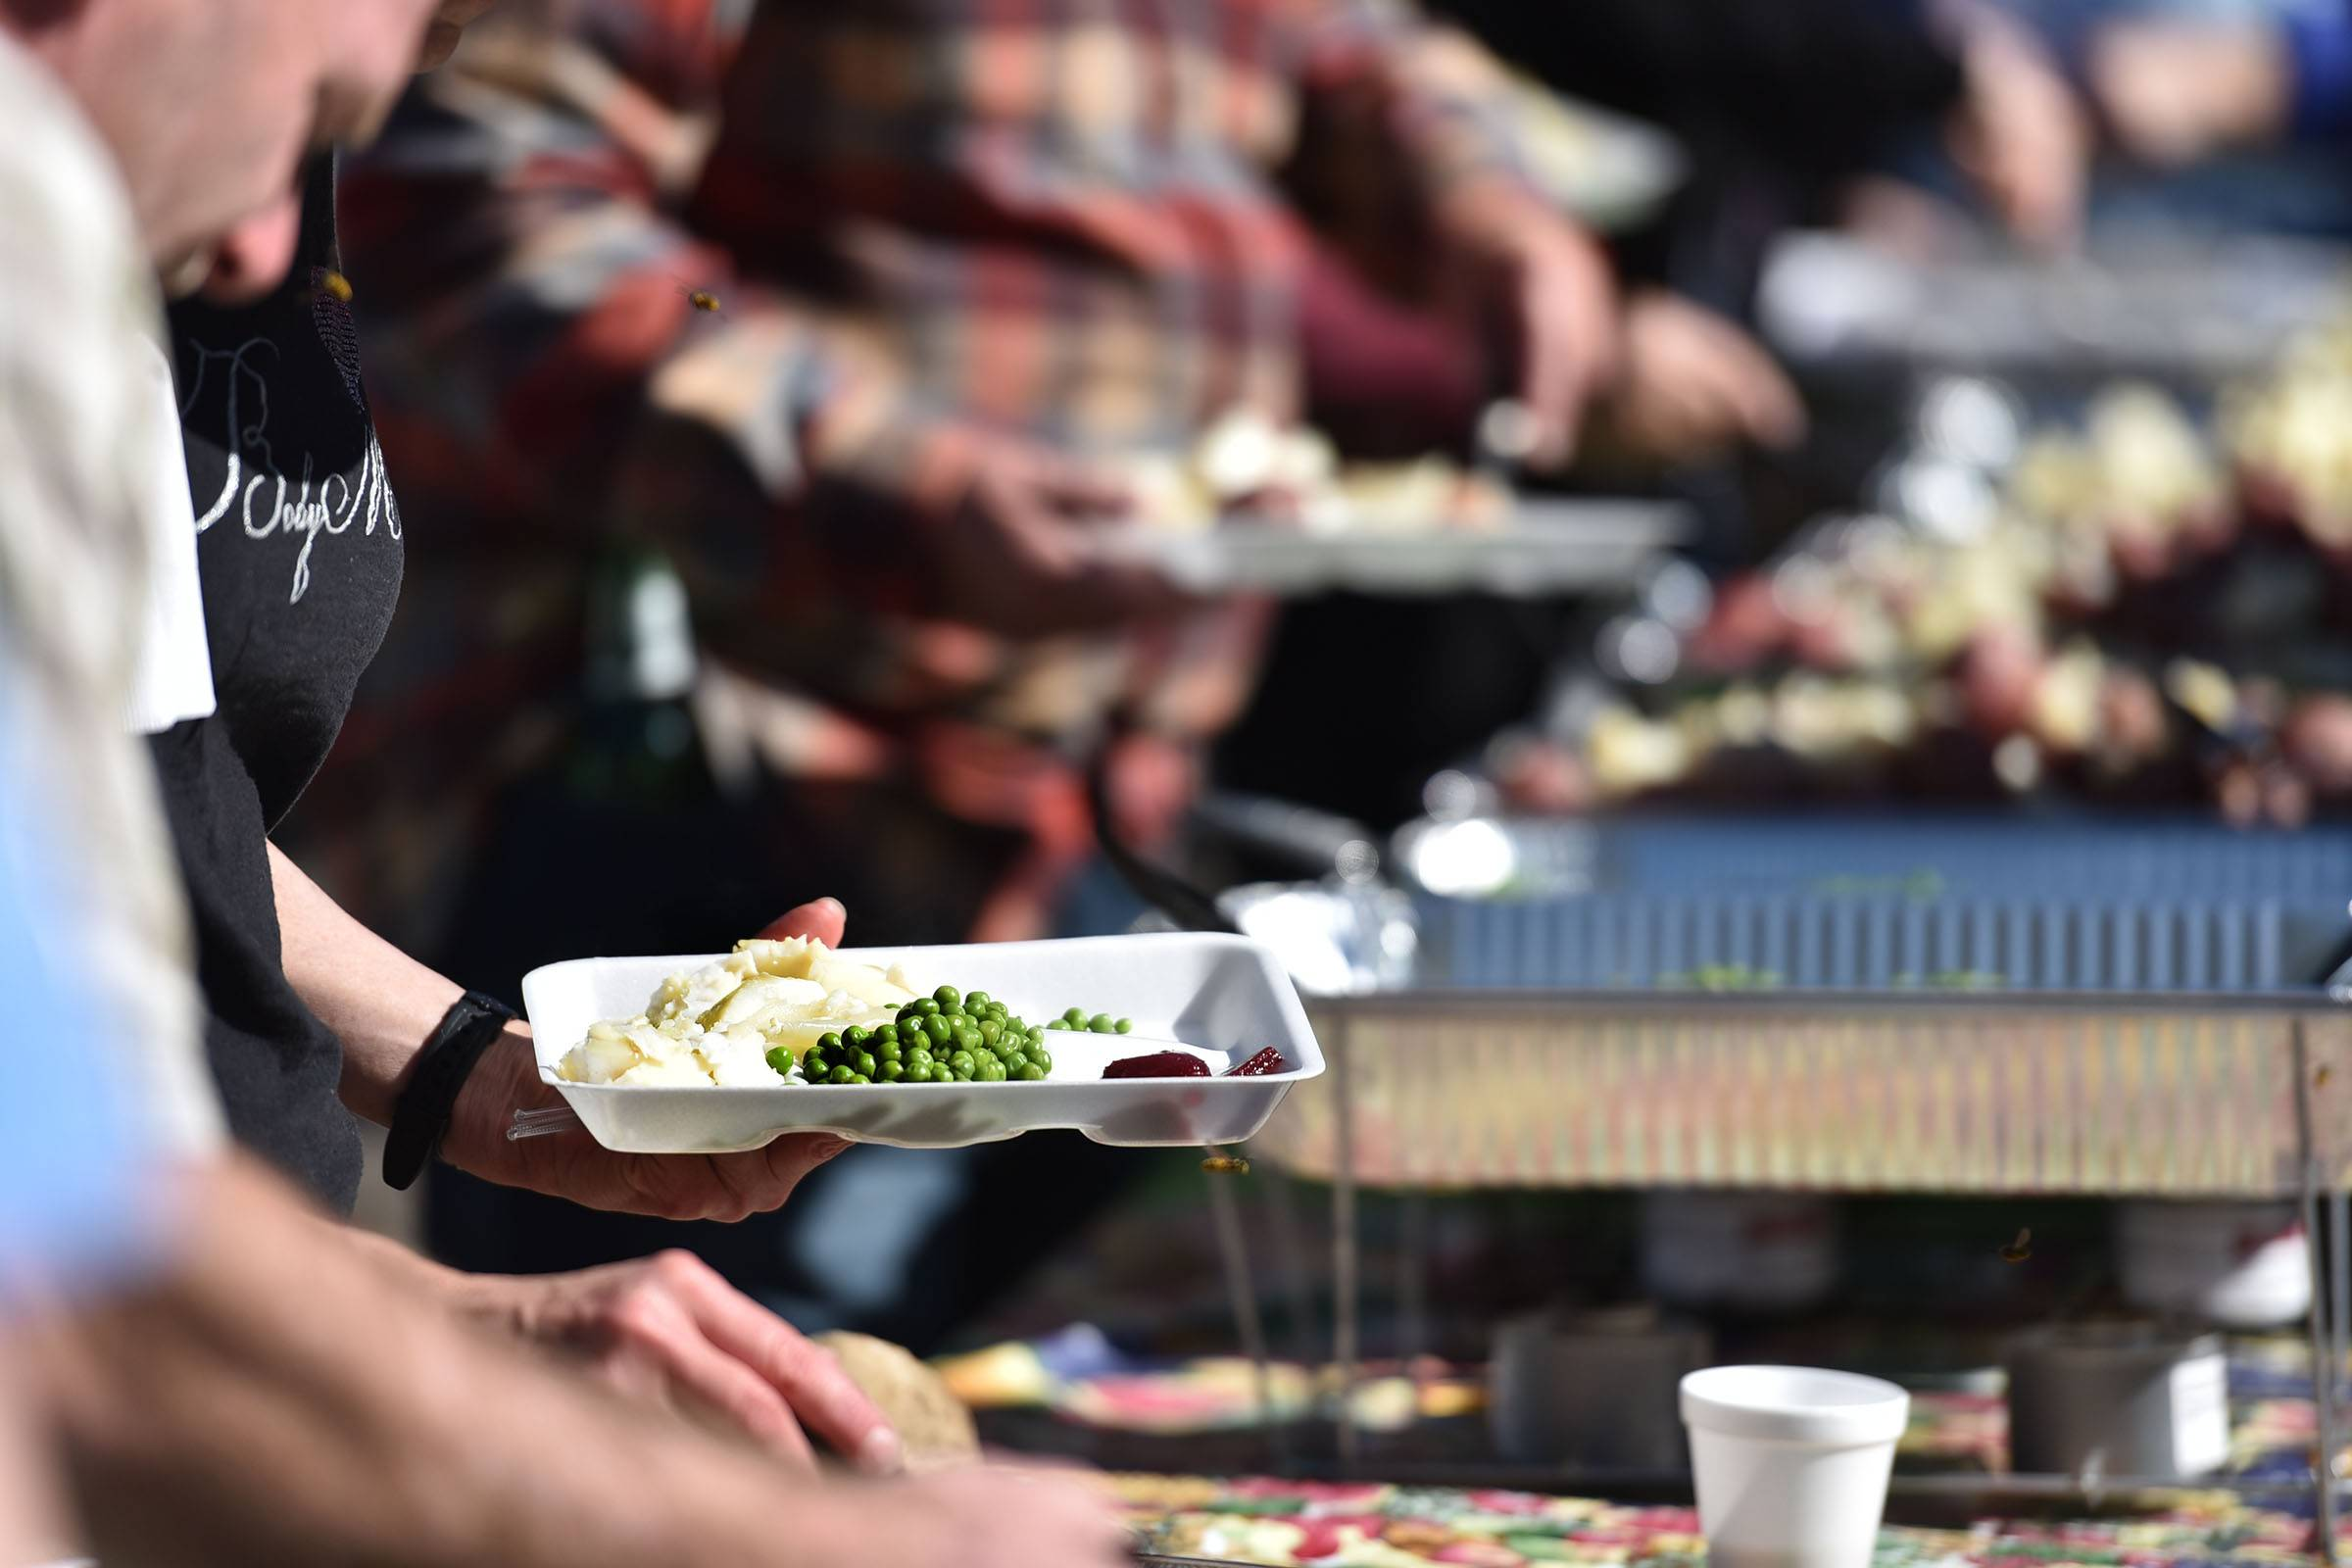 More than 90 people registered for a meal of Icelandic cod, boiled in onions and potatoes, and vegetables and dill sauce, the 17th Fish Boil at Vasa Park in South Elgin Saturday.